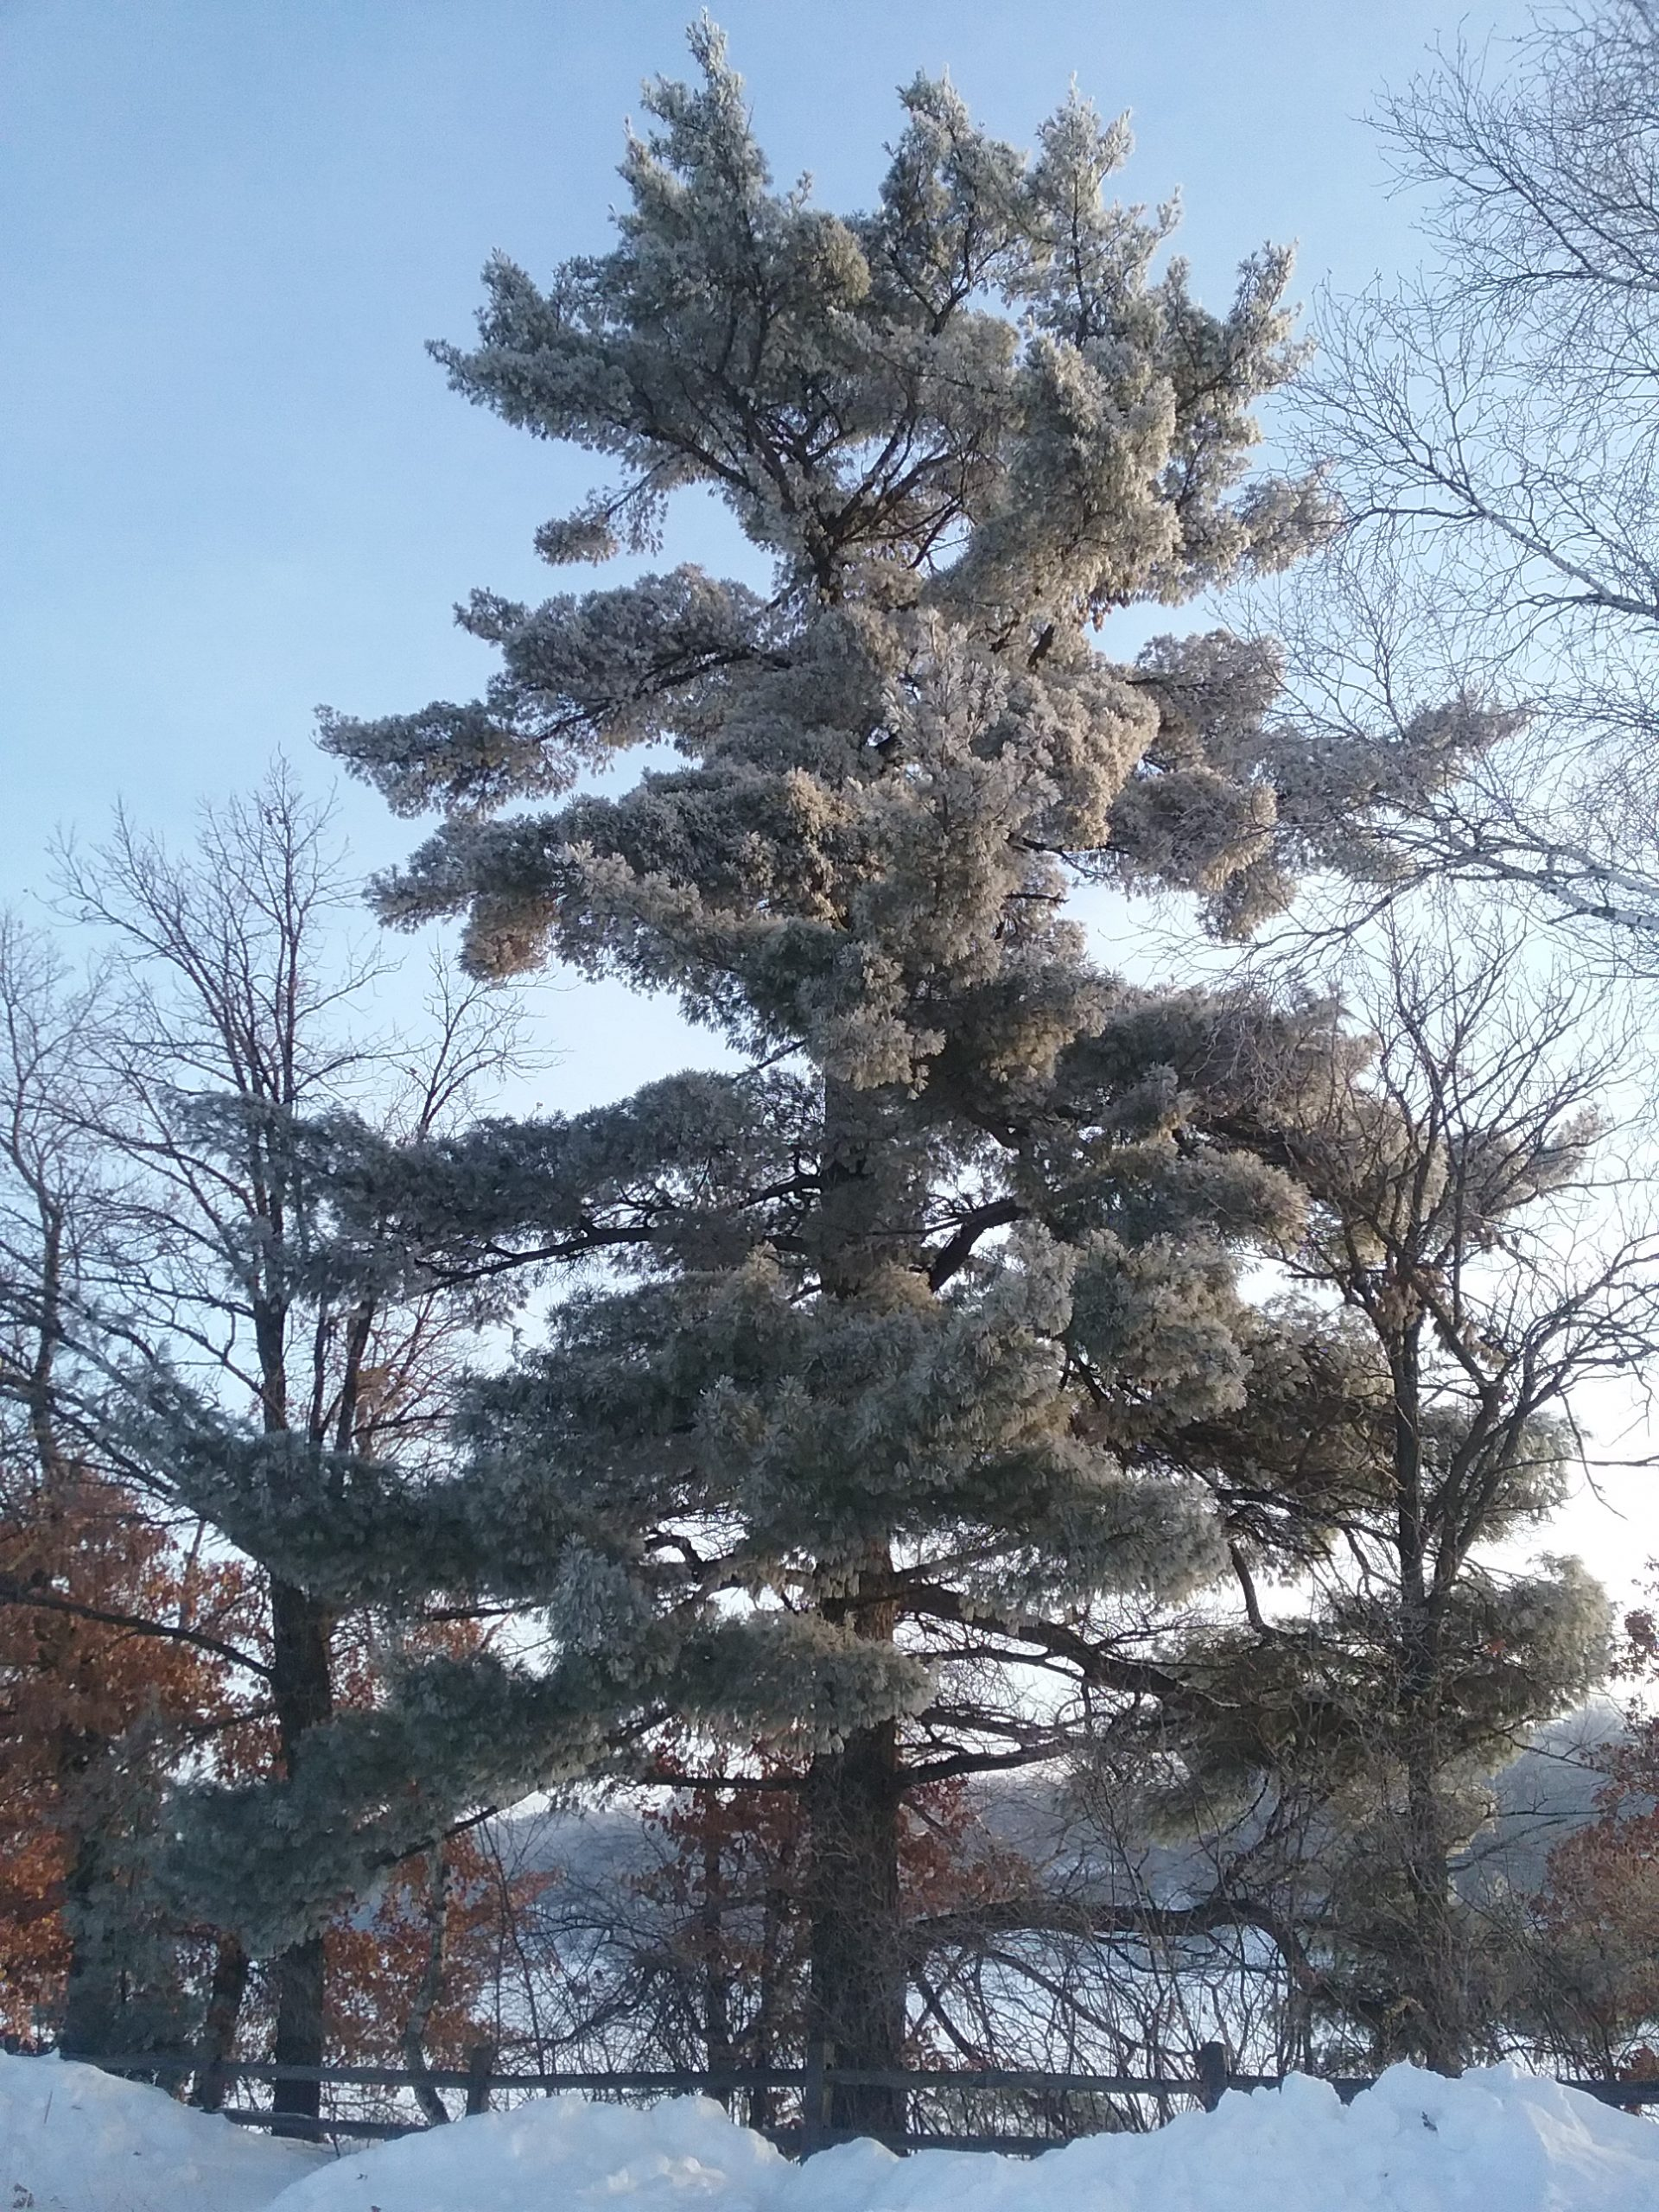 Frosty Big Pine at The Charles A. Weyerhaeuser Memorial Museum, December 21, 2019.